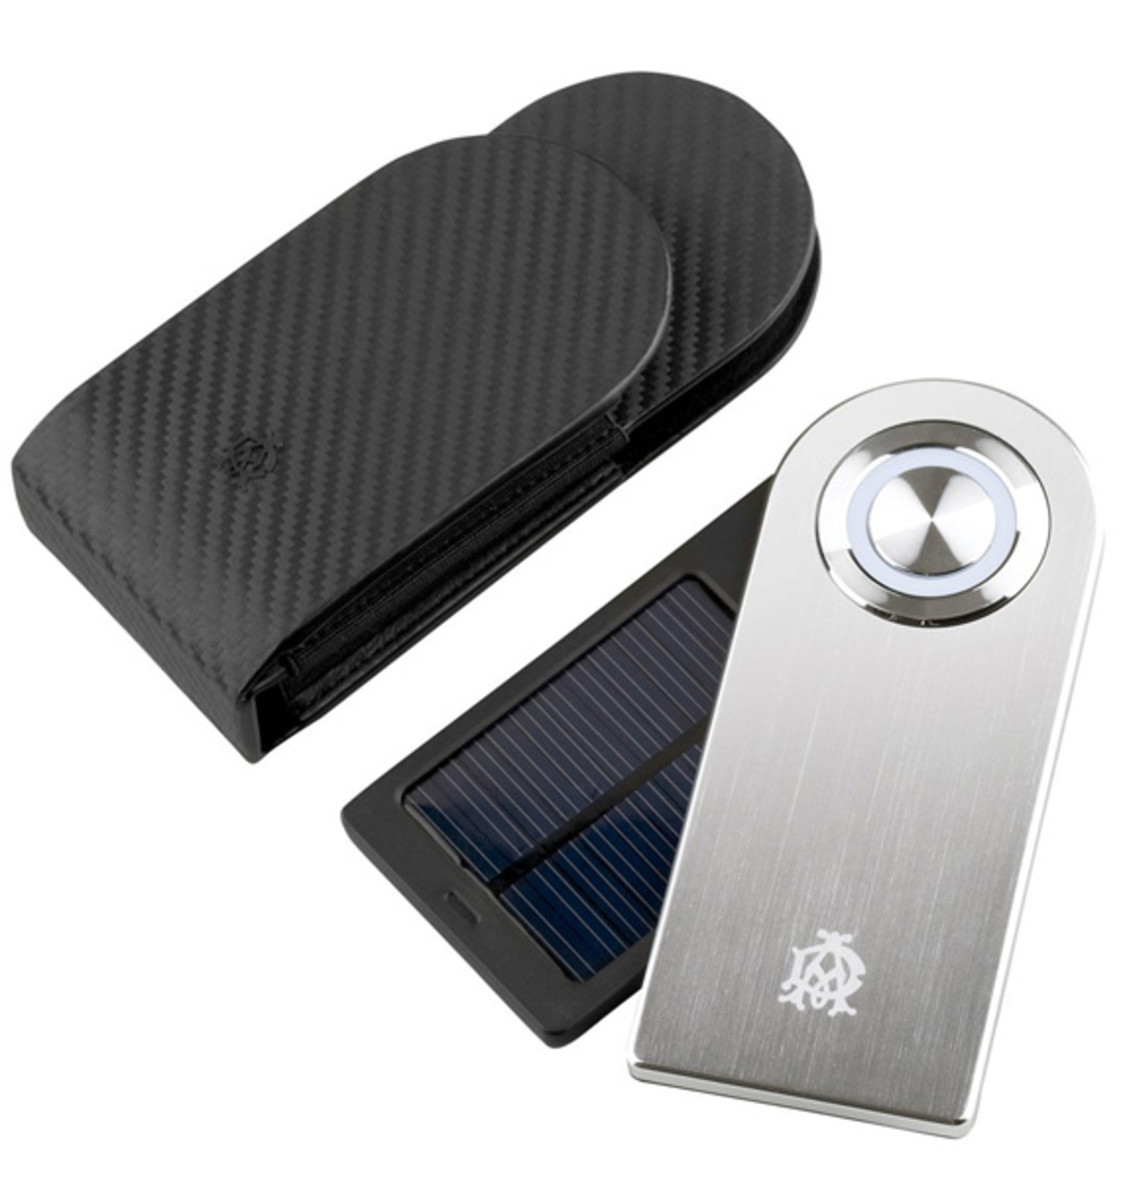 dunhill-solar-charger-03